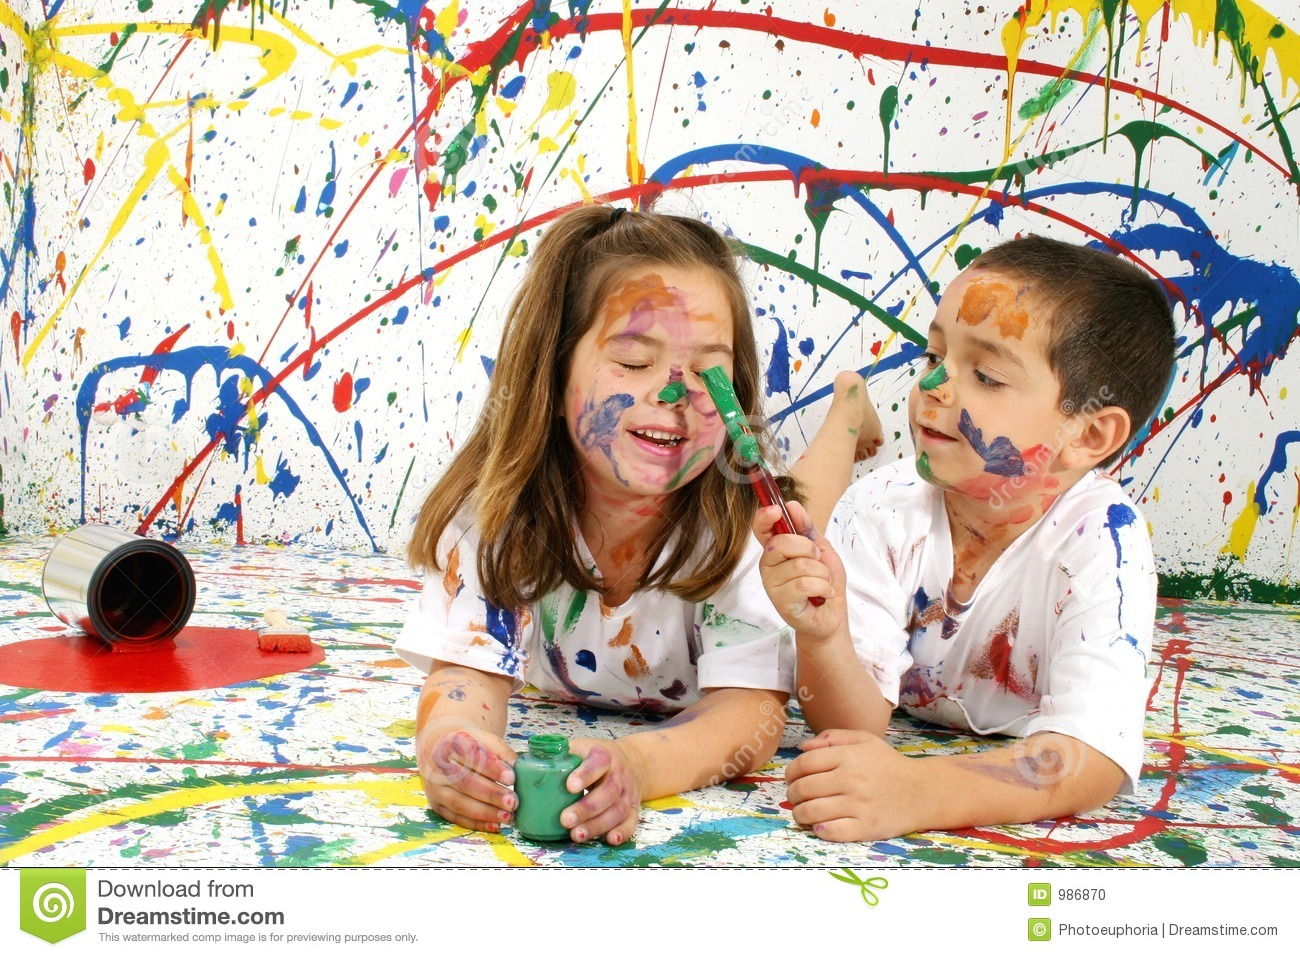 Paint Children stock photo. Image of colorful, happy, full ...